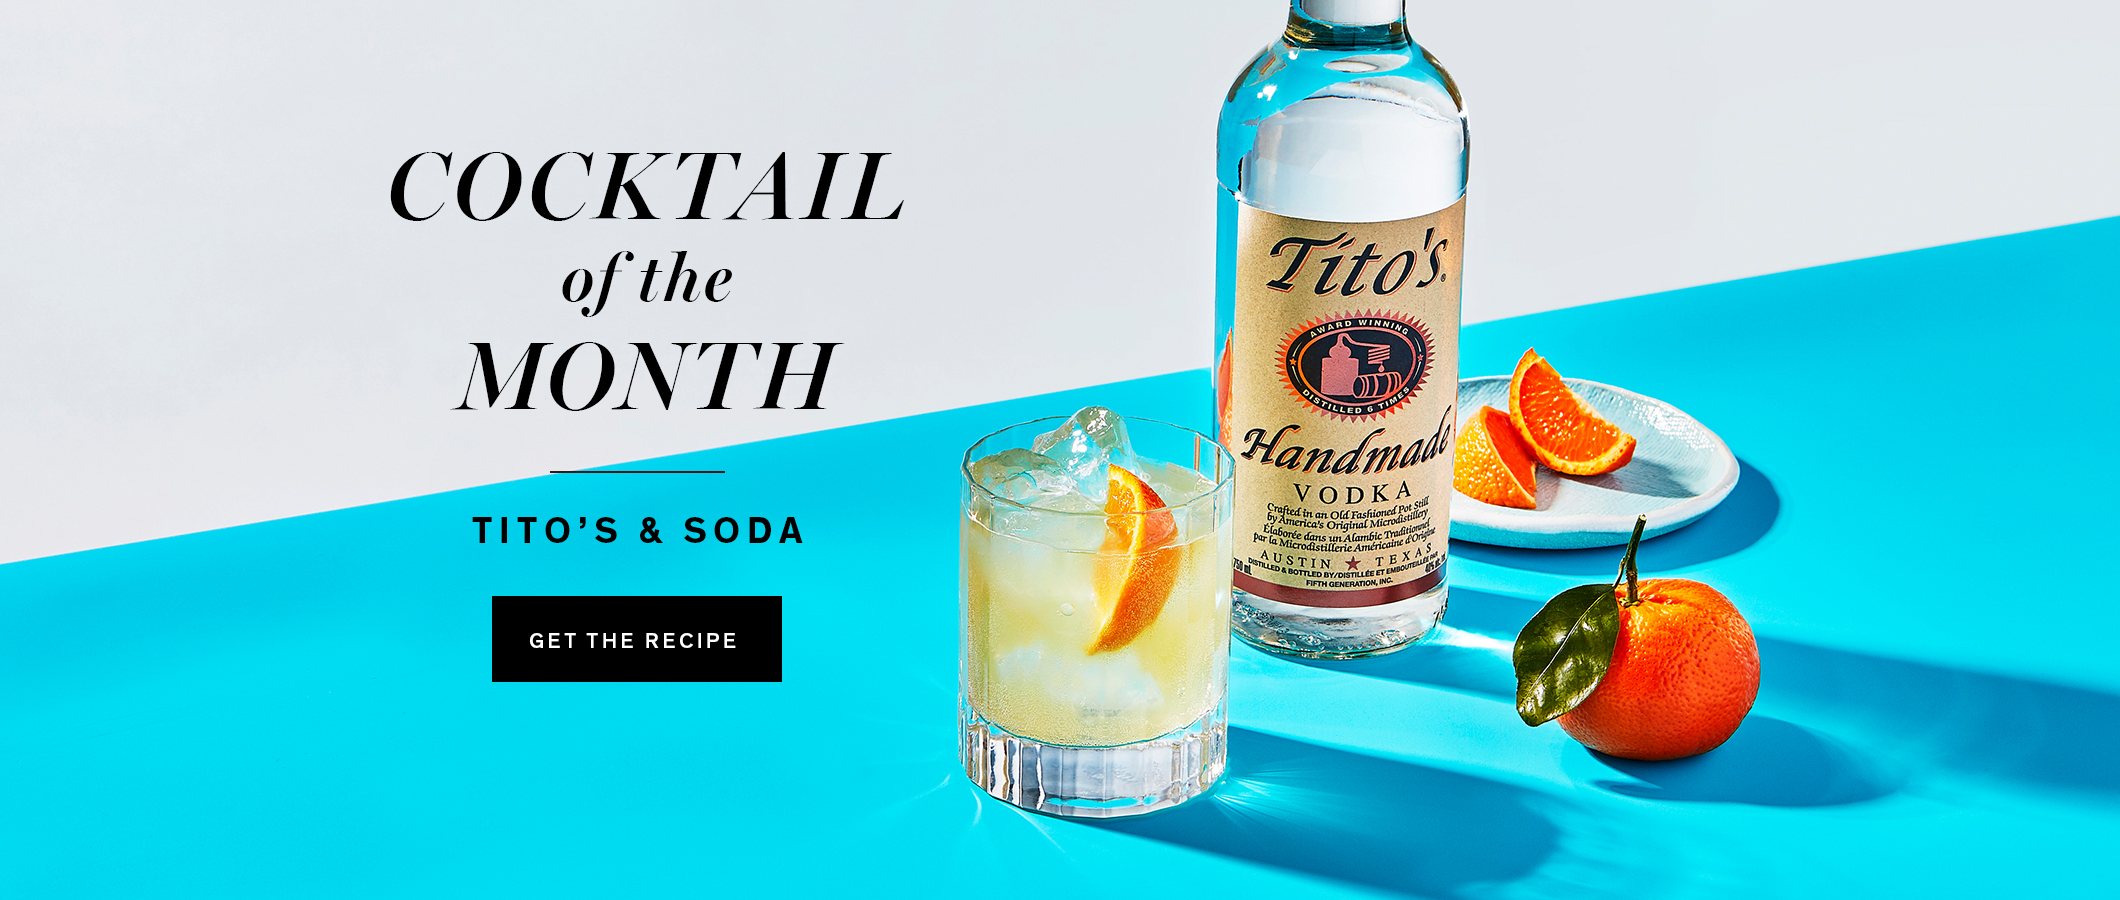 Cocktail of the Month  Tito's & Soda. Get the Recipe